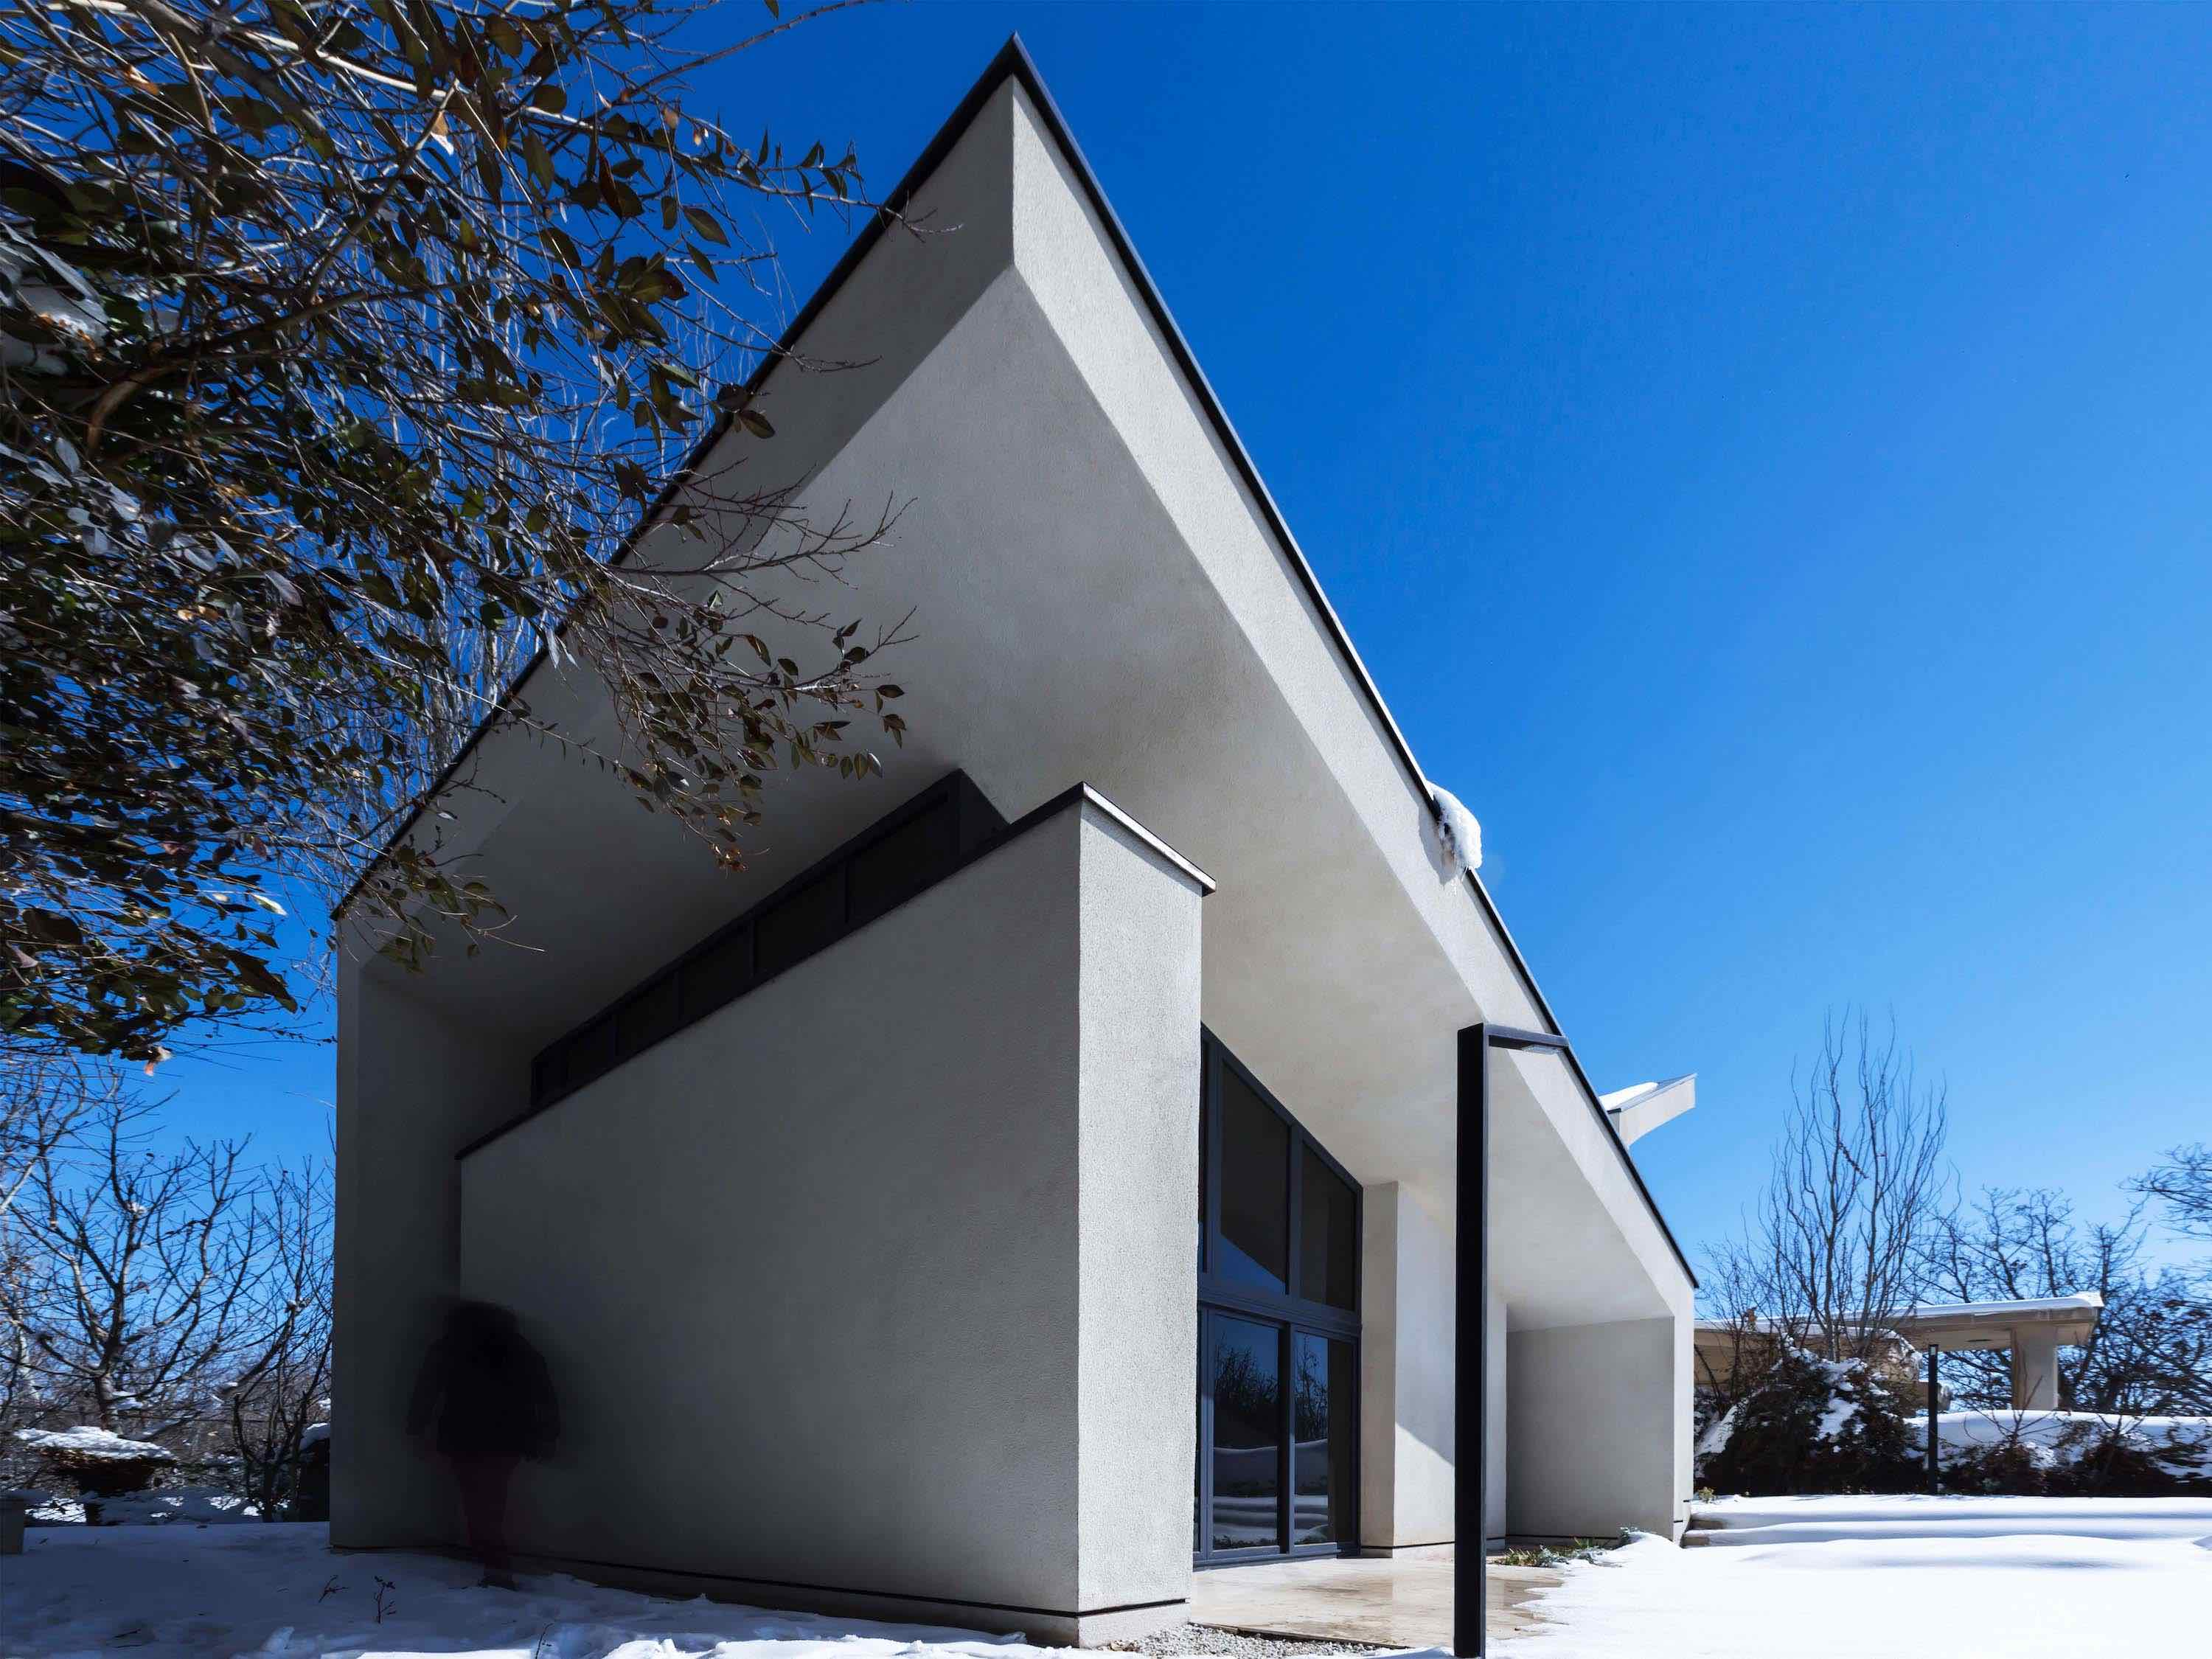 Chaman Villa designed by Special Space Studio in Mehshahra